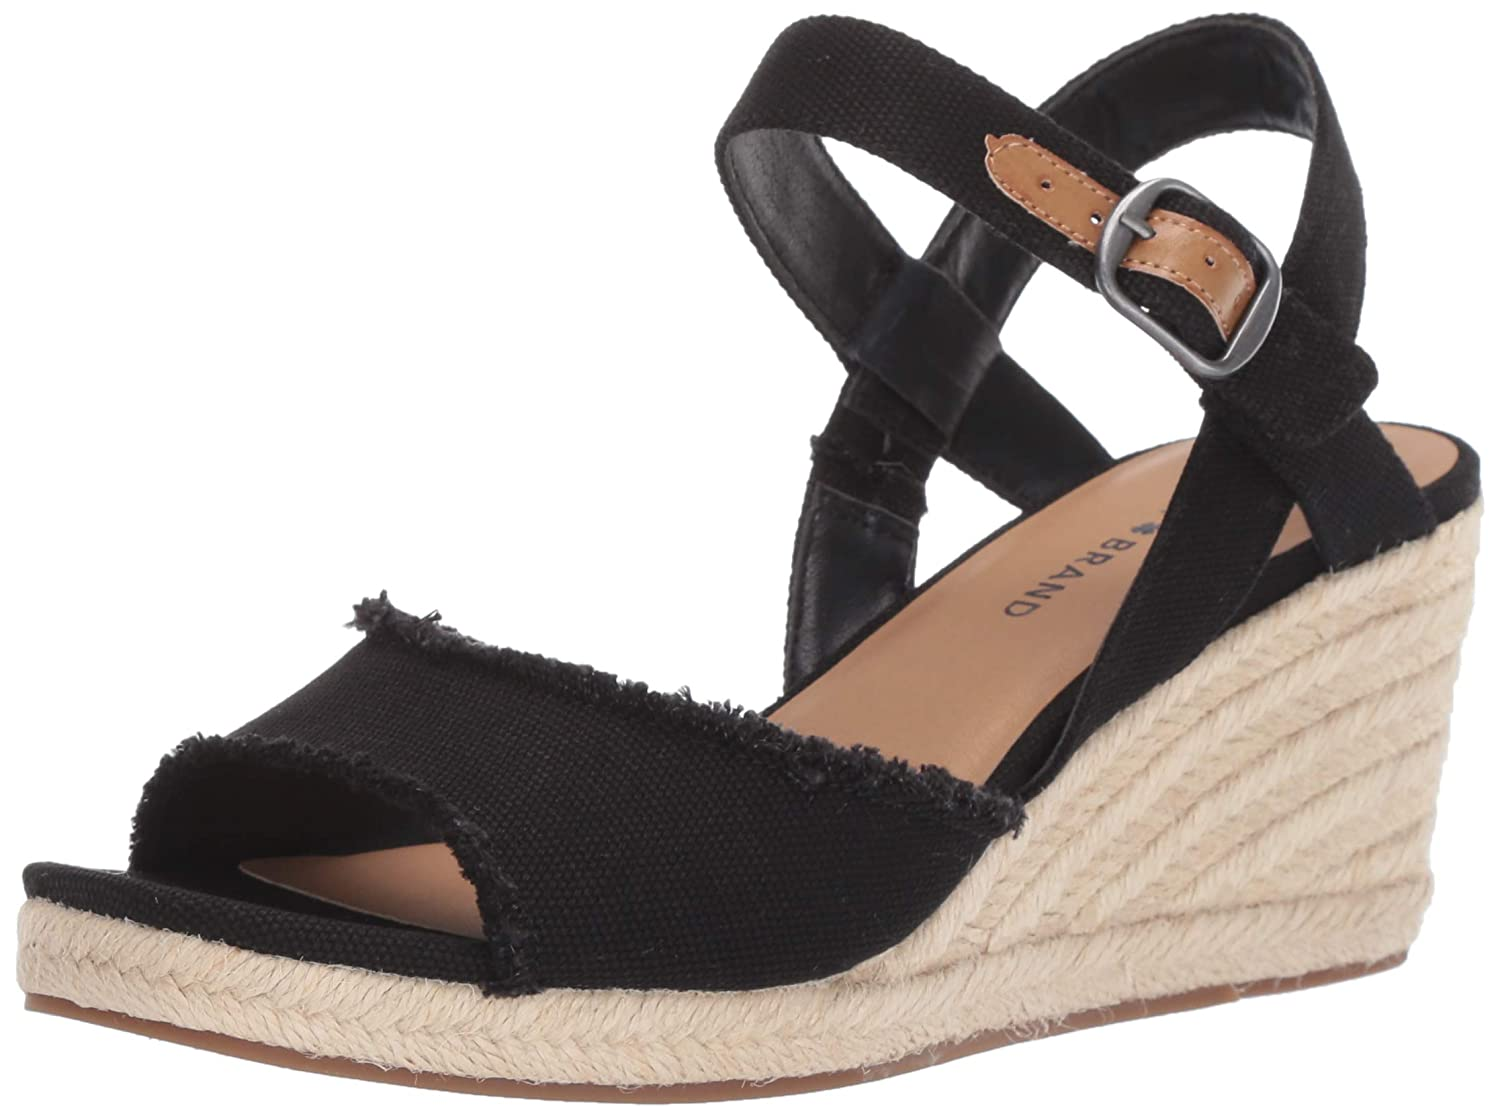 e3dcedc6e29 Amazon.com  Lucky Brand Women s Mindra Espadrille Wedge Sandal  Shoes